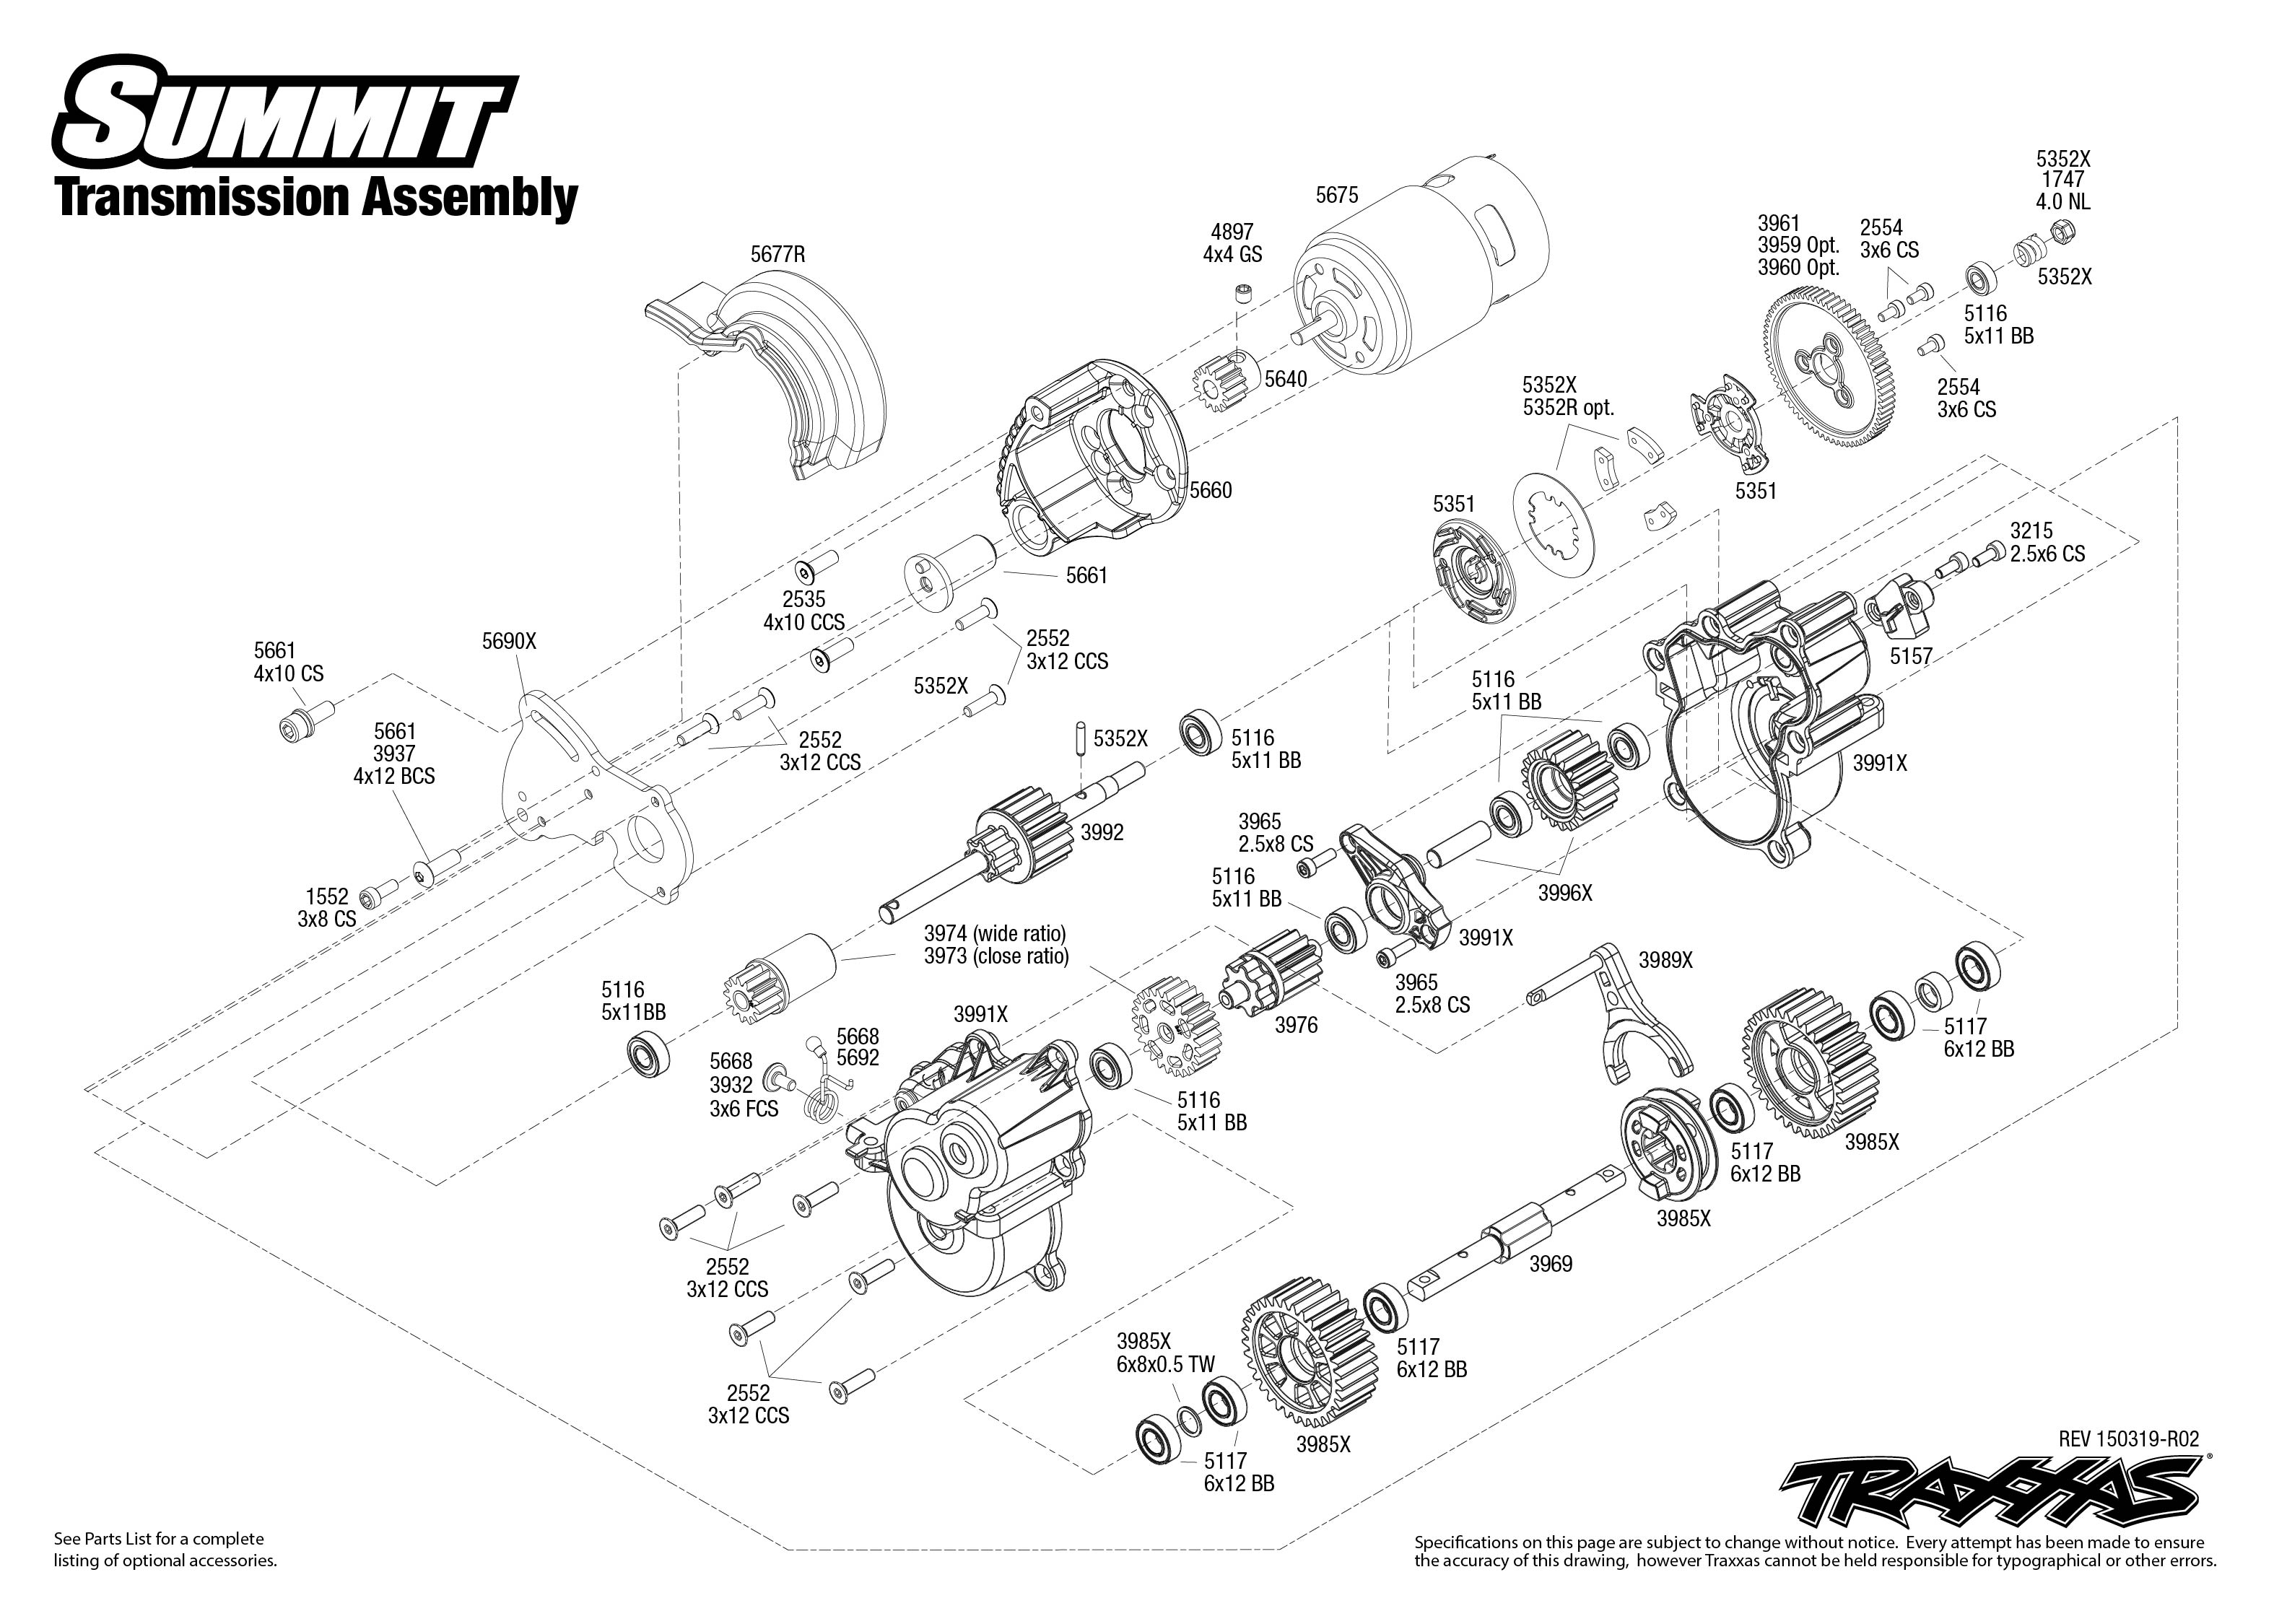 Traxxas Stampede Wiring Diagram : 31 Wiring Diagram Images